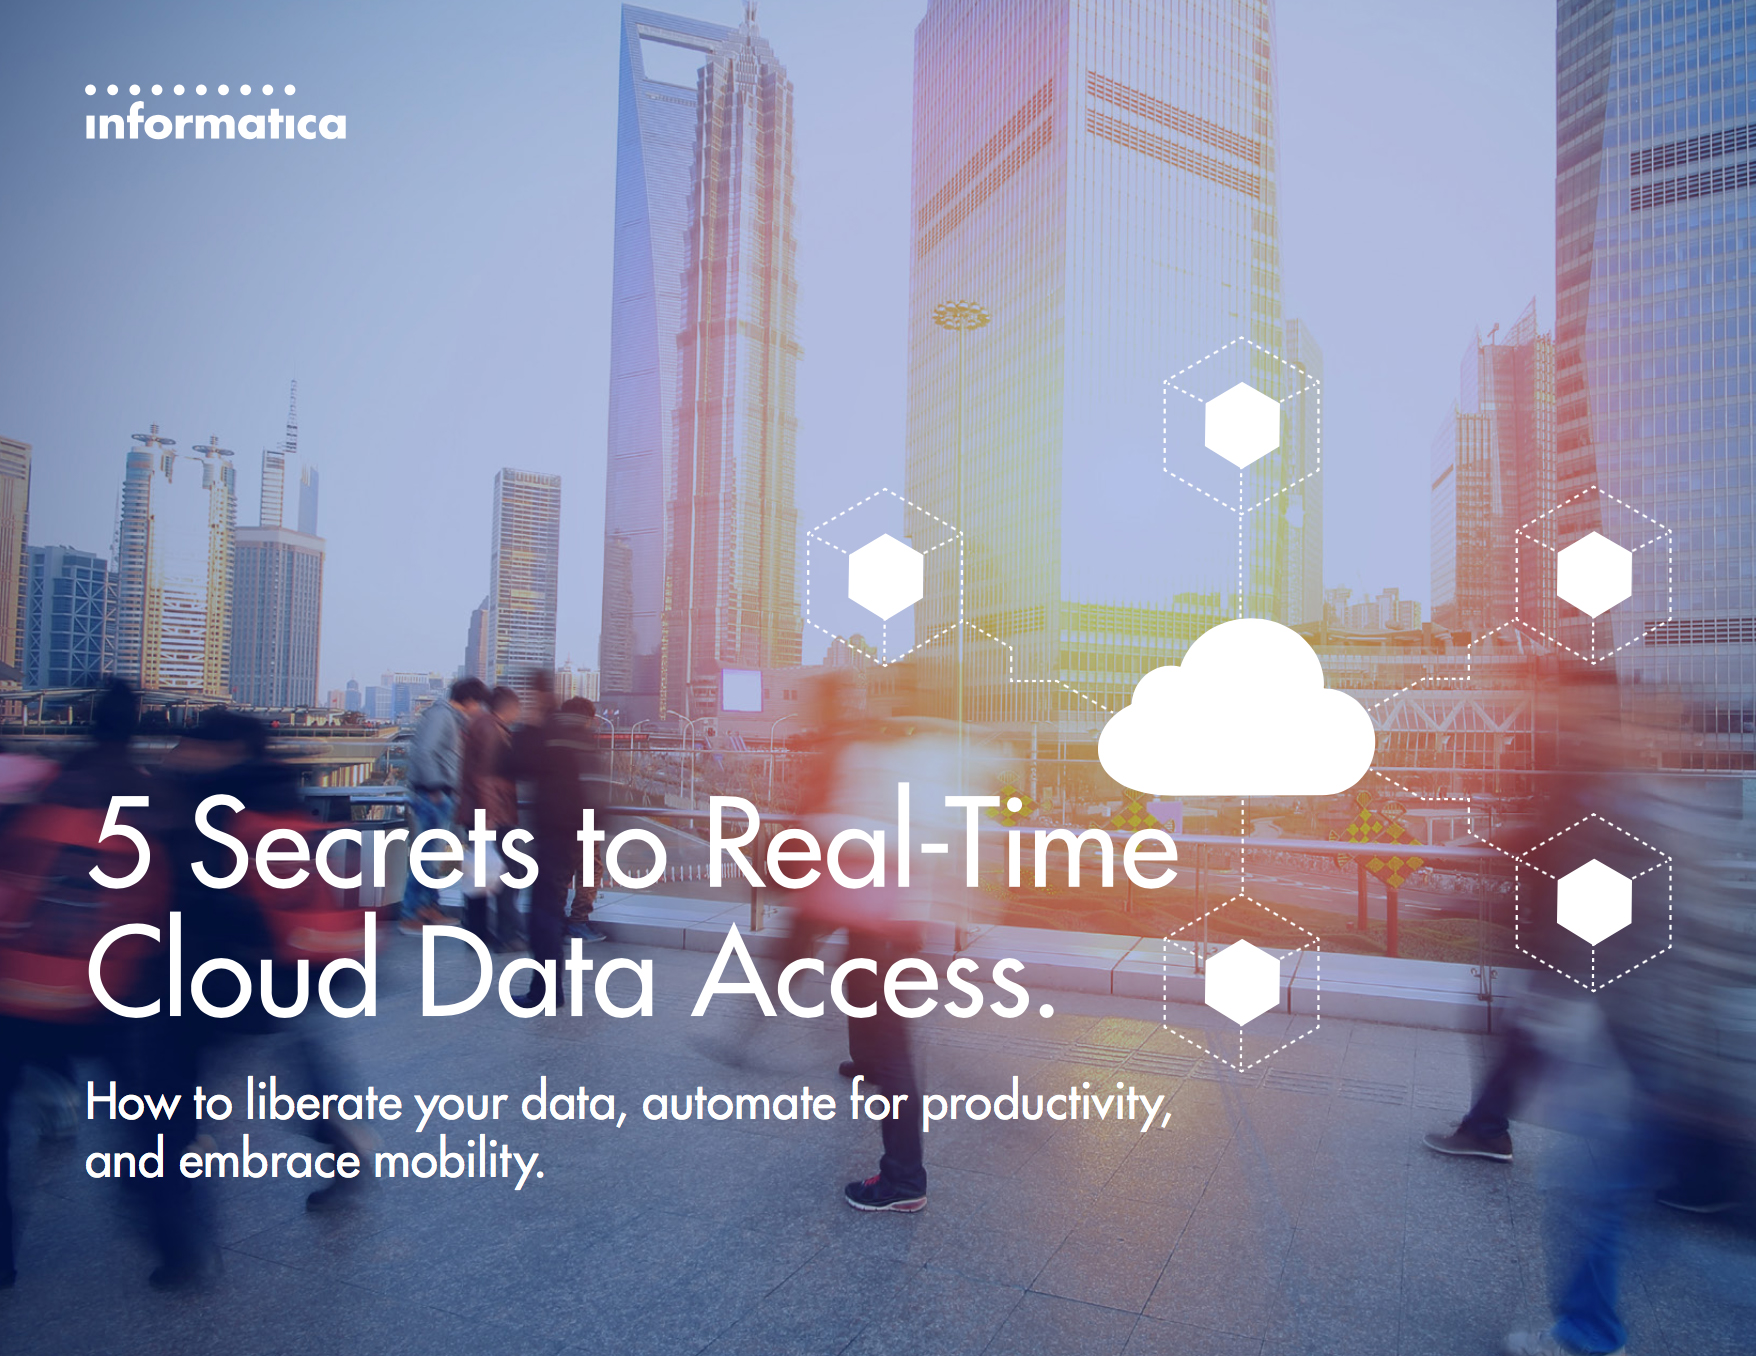 5 Secrets to Delivering Actionable, Real-Time Cloud Data